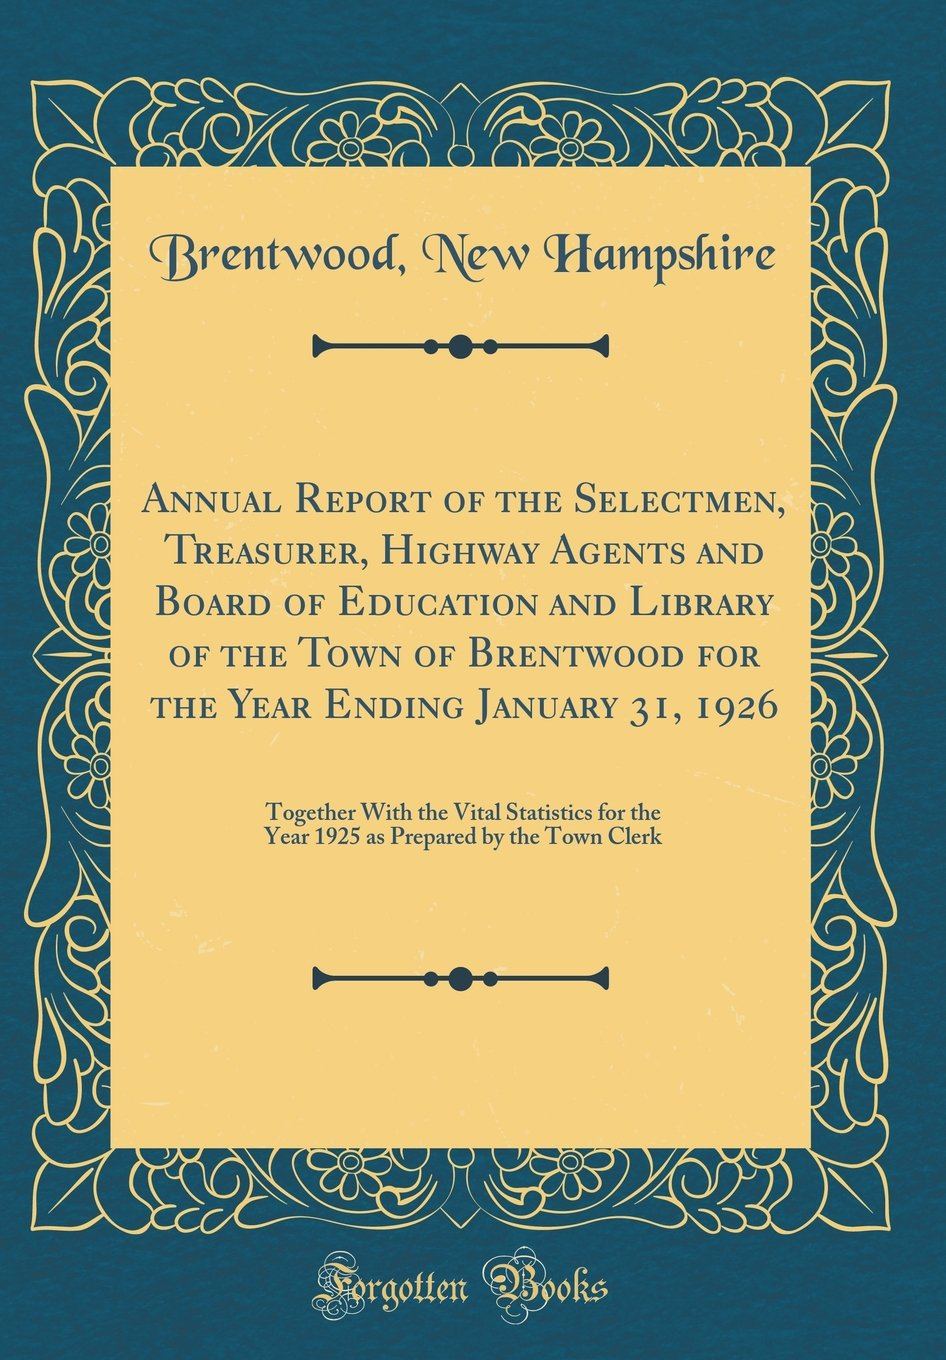 Annual Report of the Selectmen, Treasurer, Highway Agents and Board of Education and Library of the Town of Brentwood for the Year Ending January 31, ... the Year 1925 as Prepared by the Town Clerk ebook